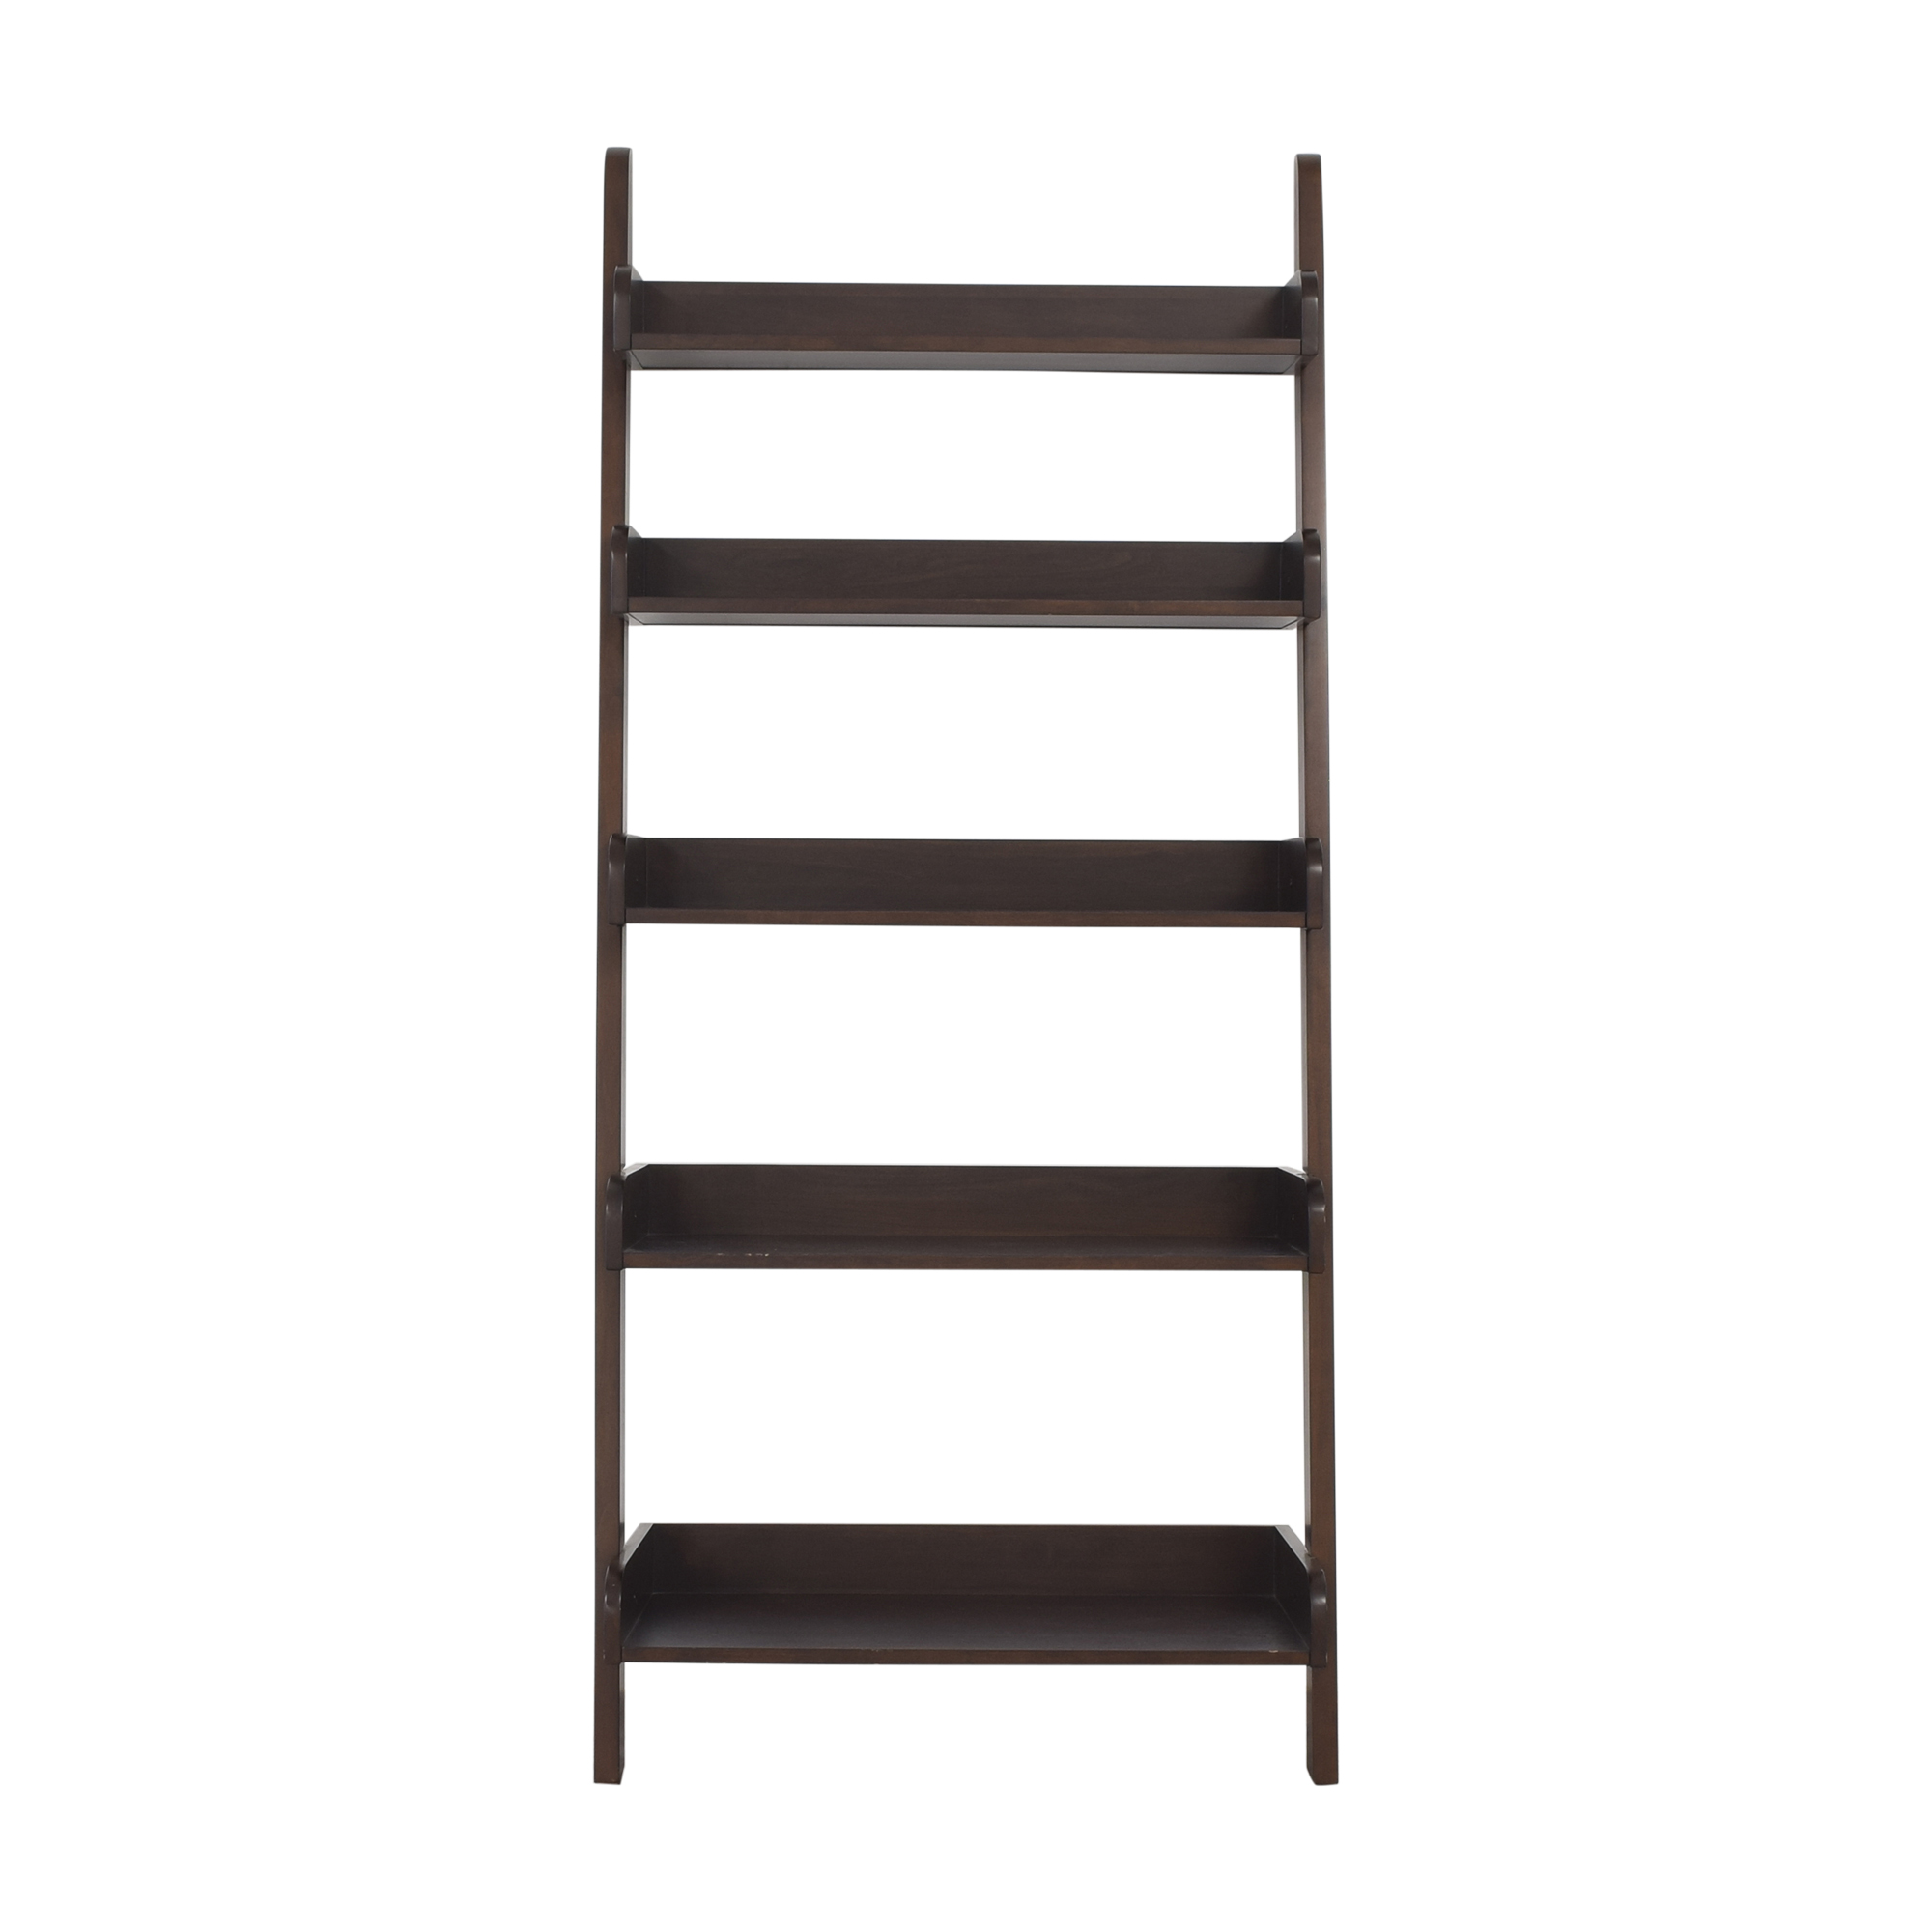 Pottery Barn Pottery Barn Studio Ladder Shelf coupon